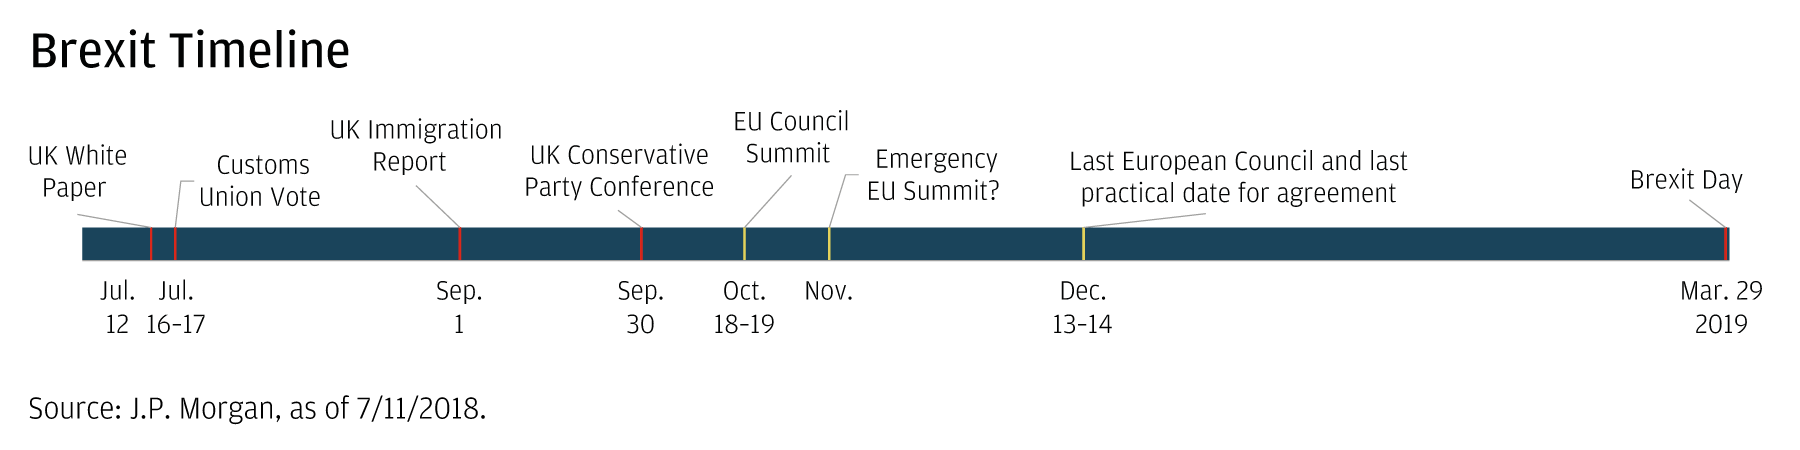 Brexit timeline An infographic shows a timeline of major events related to Brexit, between July 12, 2018 and a projection out to March 29, 2019.